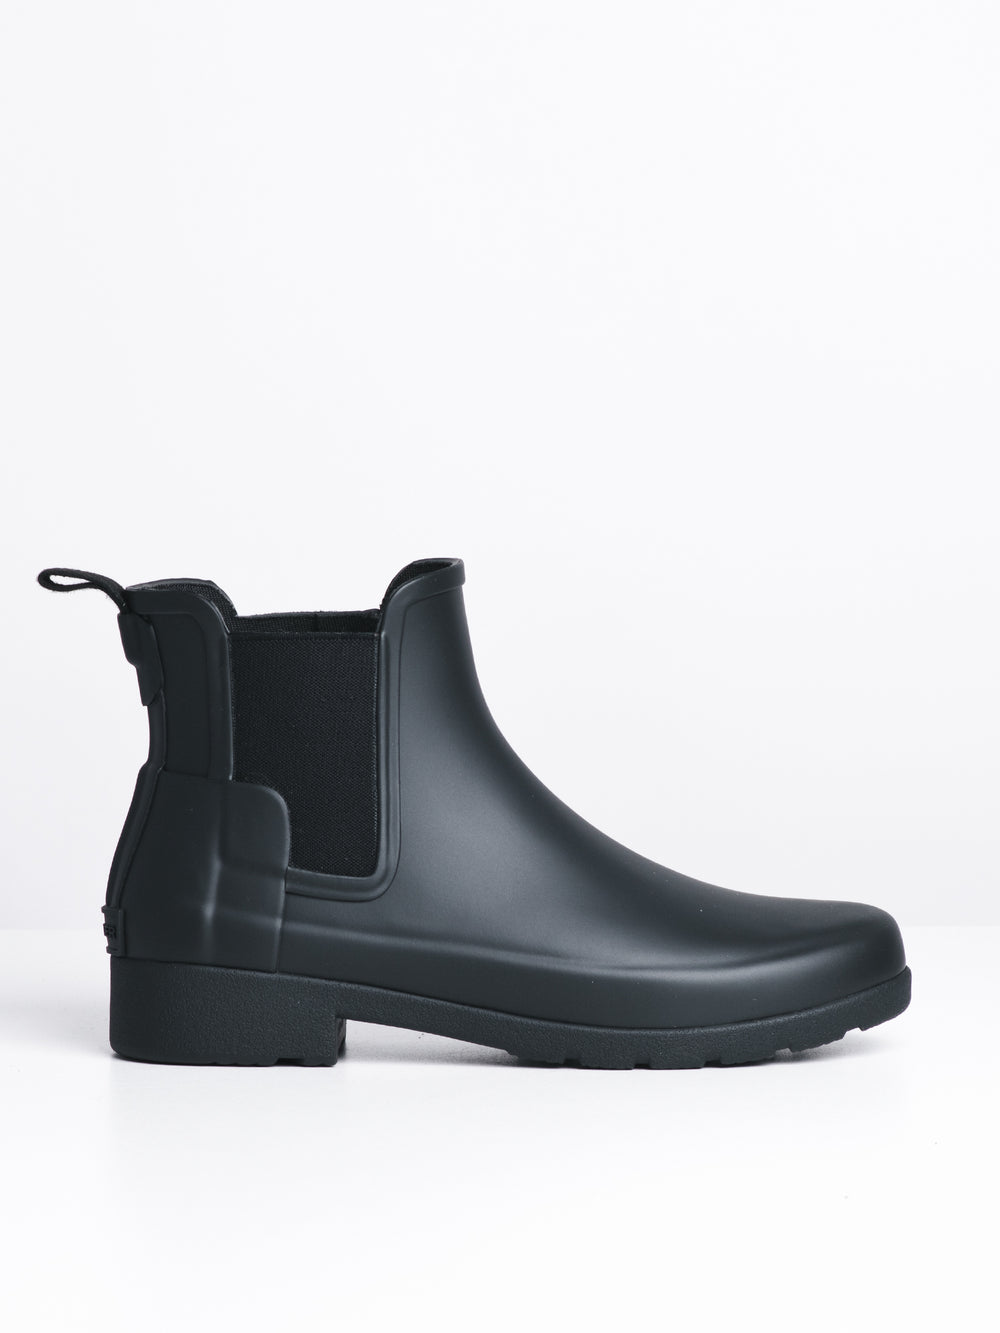 WOMENS ORIGINAL REFINED CHELSEA  BOOTS